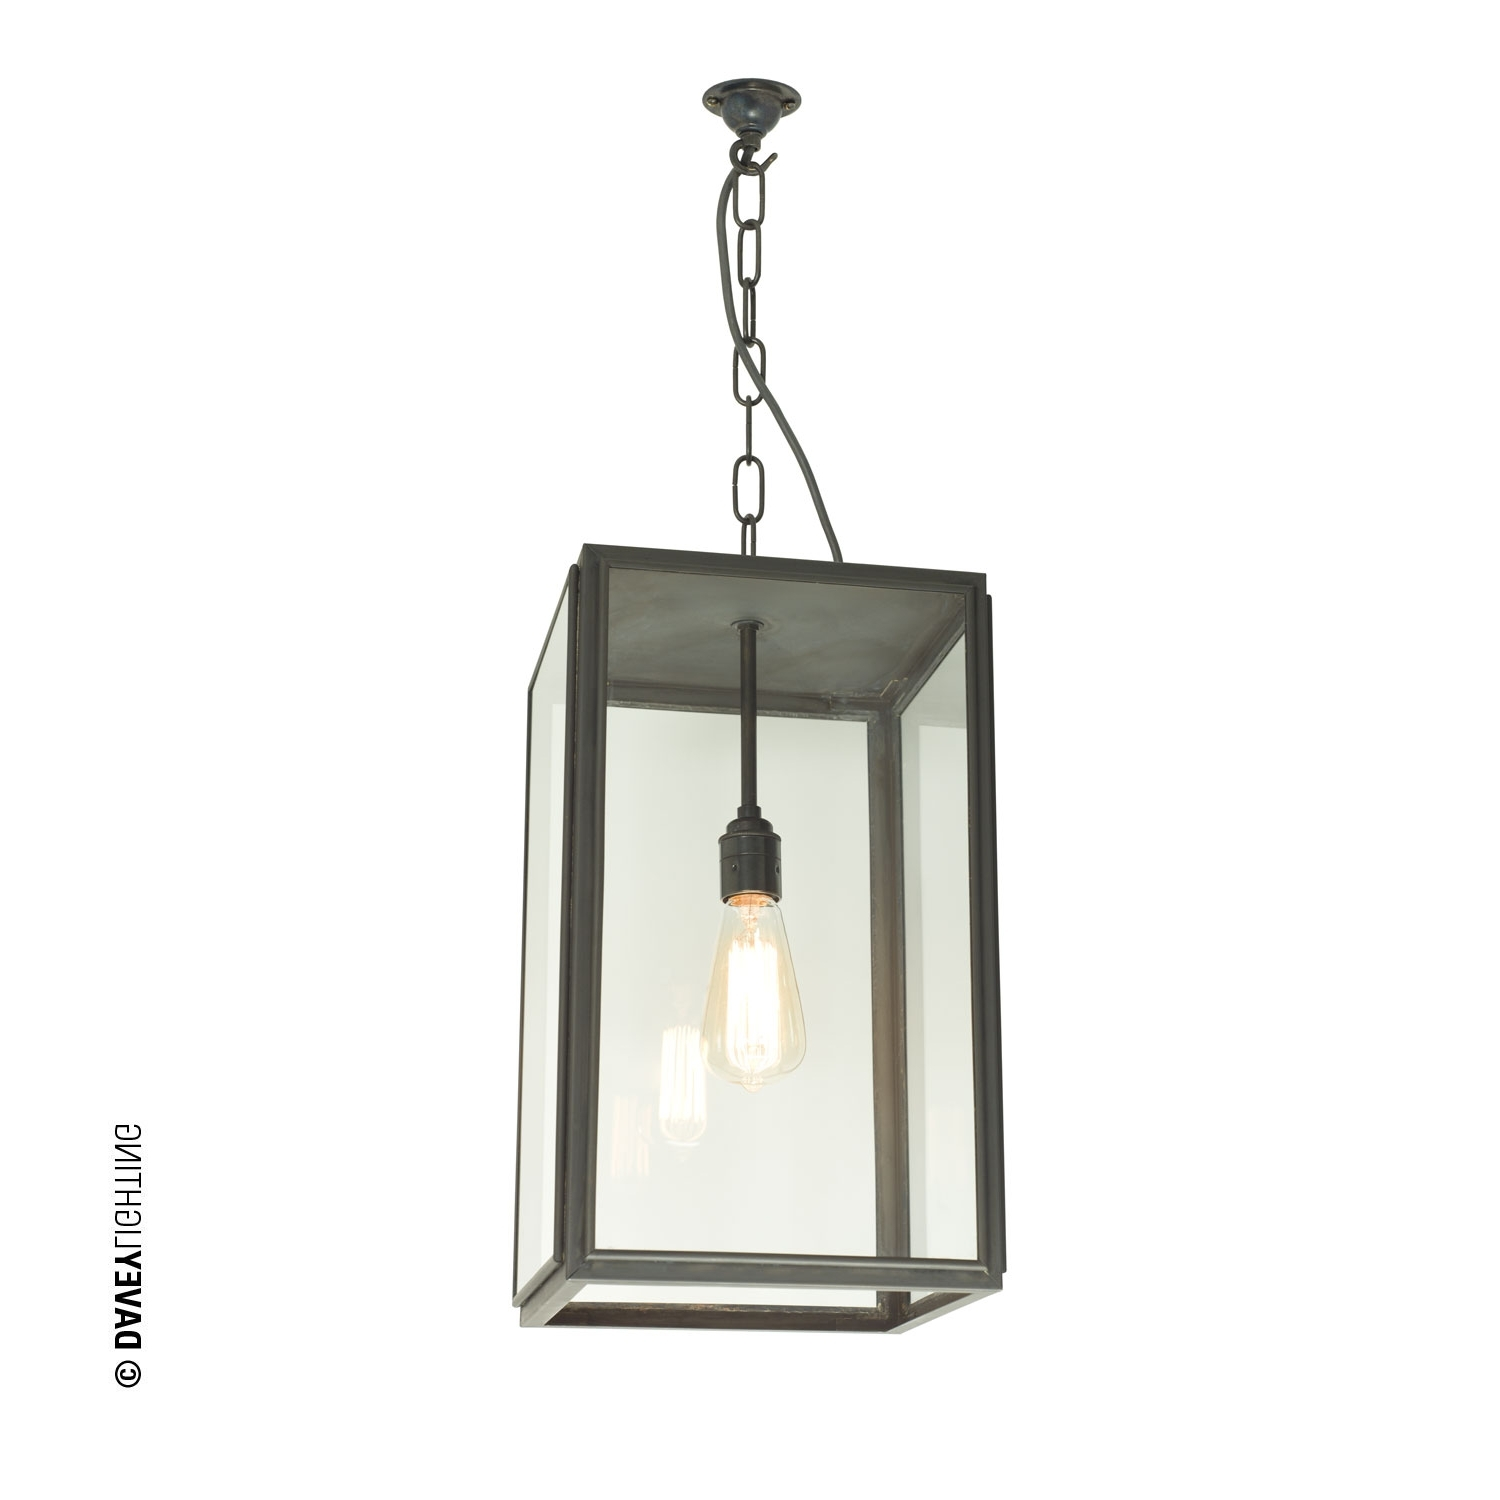 Widely Used 52 Most Exemplary Outdoor Chandeliers For Porches Round Pendant Inside Outdoor Electric Lanterns (View 20 of 20)